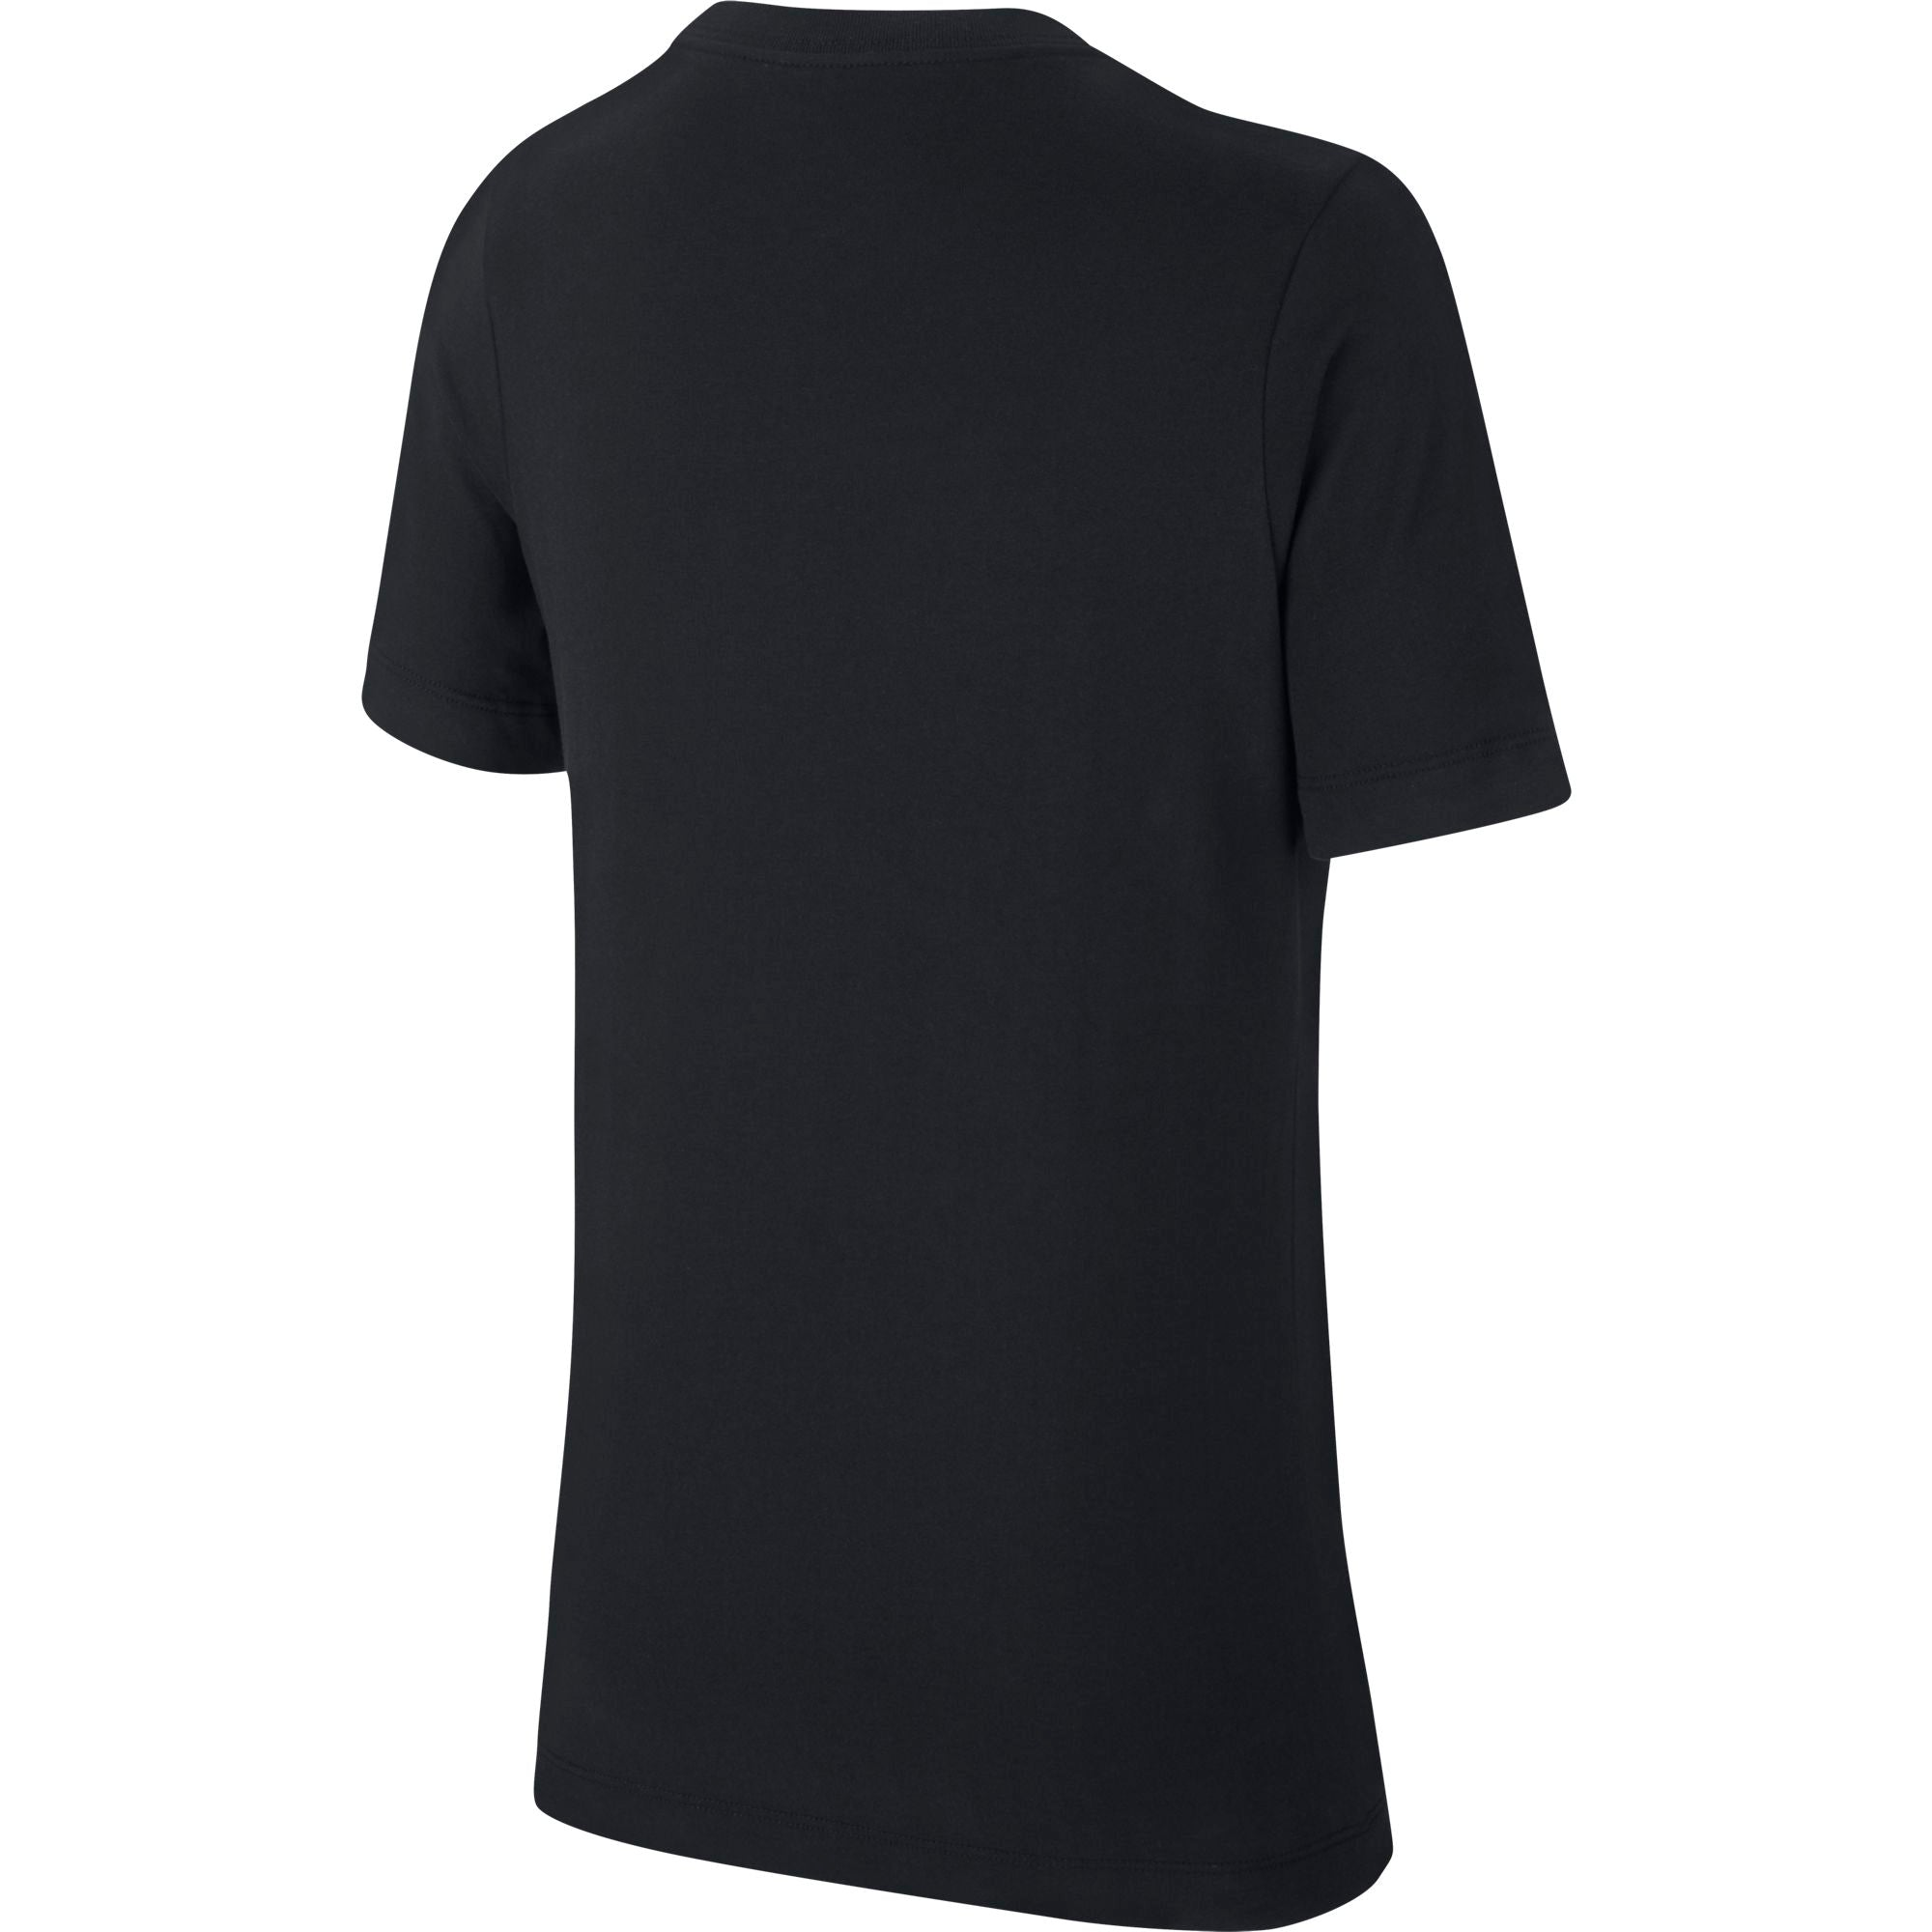 Nike Kids Dri-Fit Basketball Tee - Black